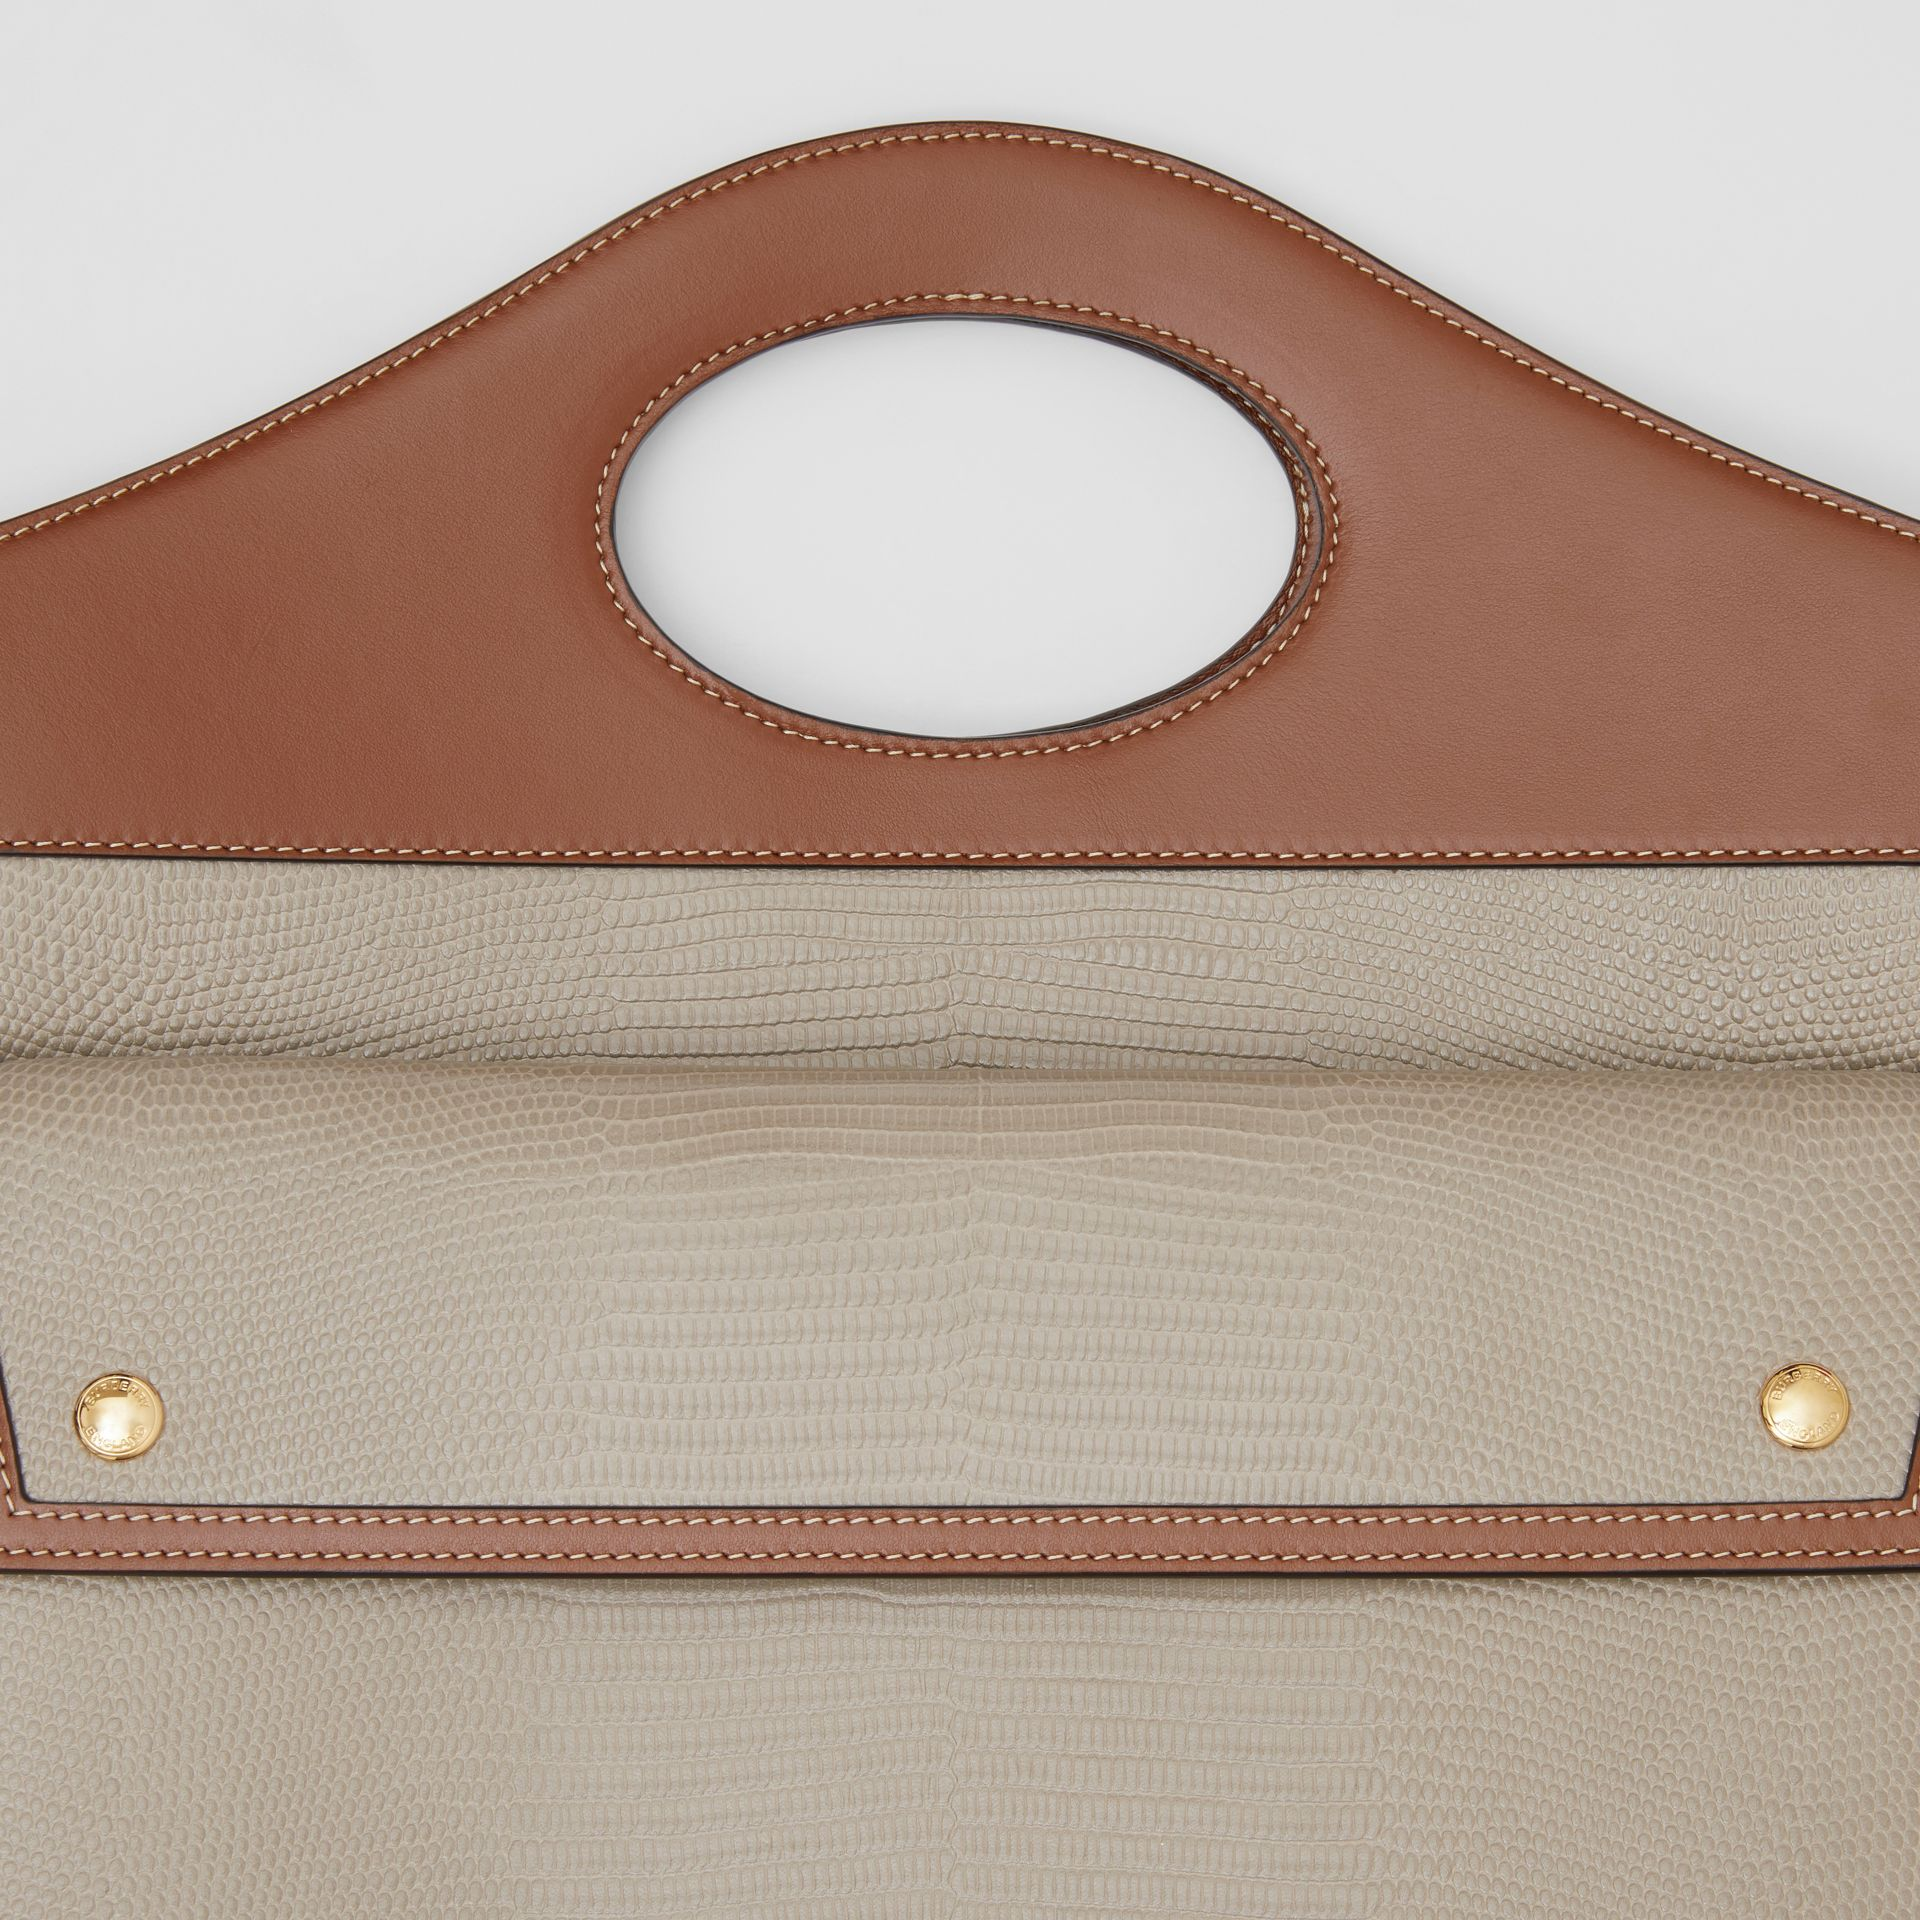 Medium Embossed Deerskin and Leather Pocket Bag in Tan - Women | Burberry Singapore - gallery image 1